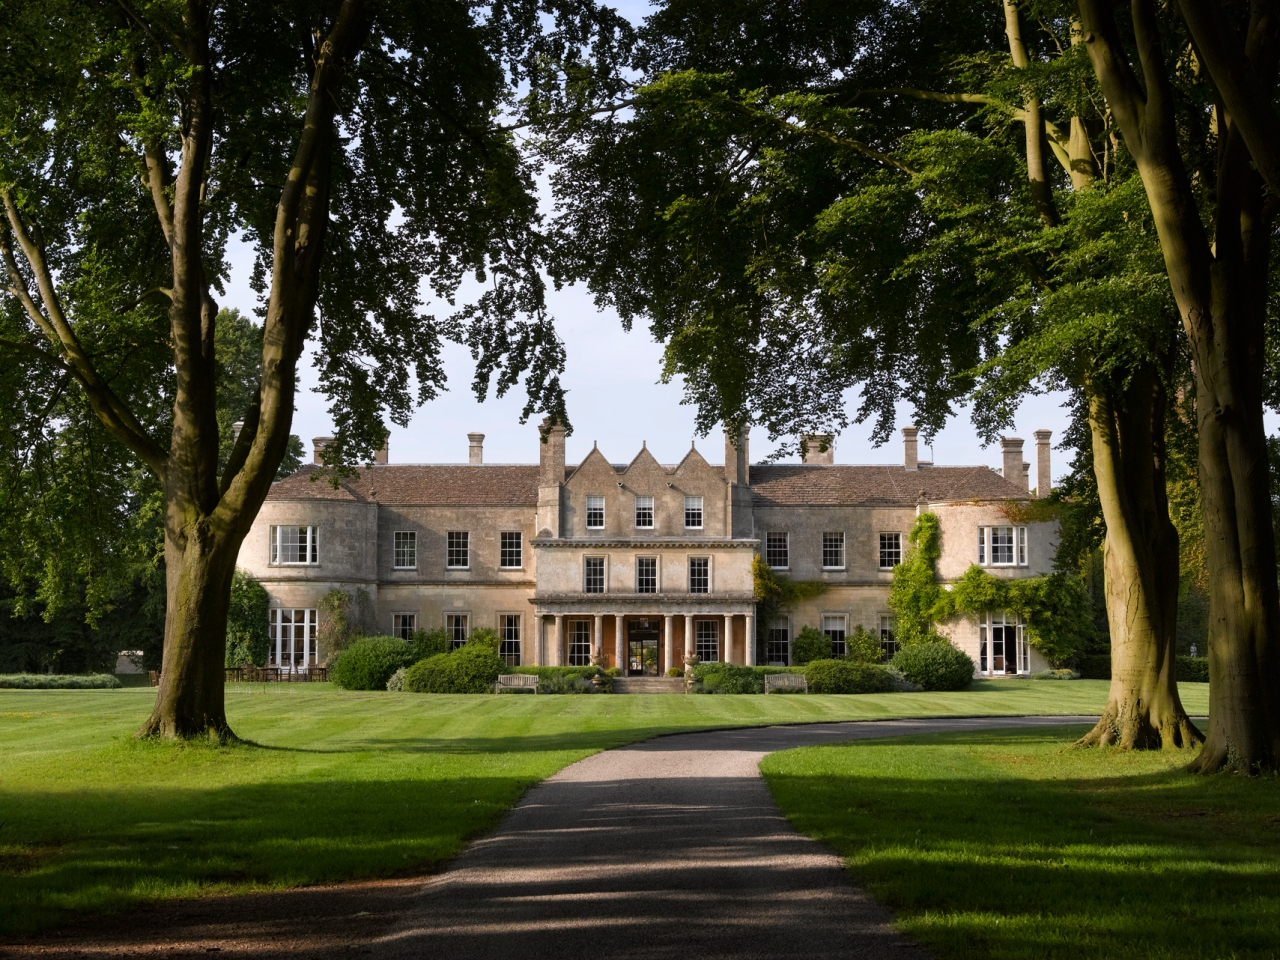 Lucknam Park Hotel and Spa, Bath, Somerset, UK